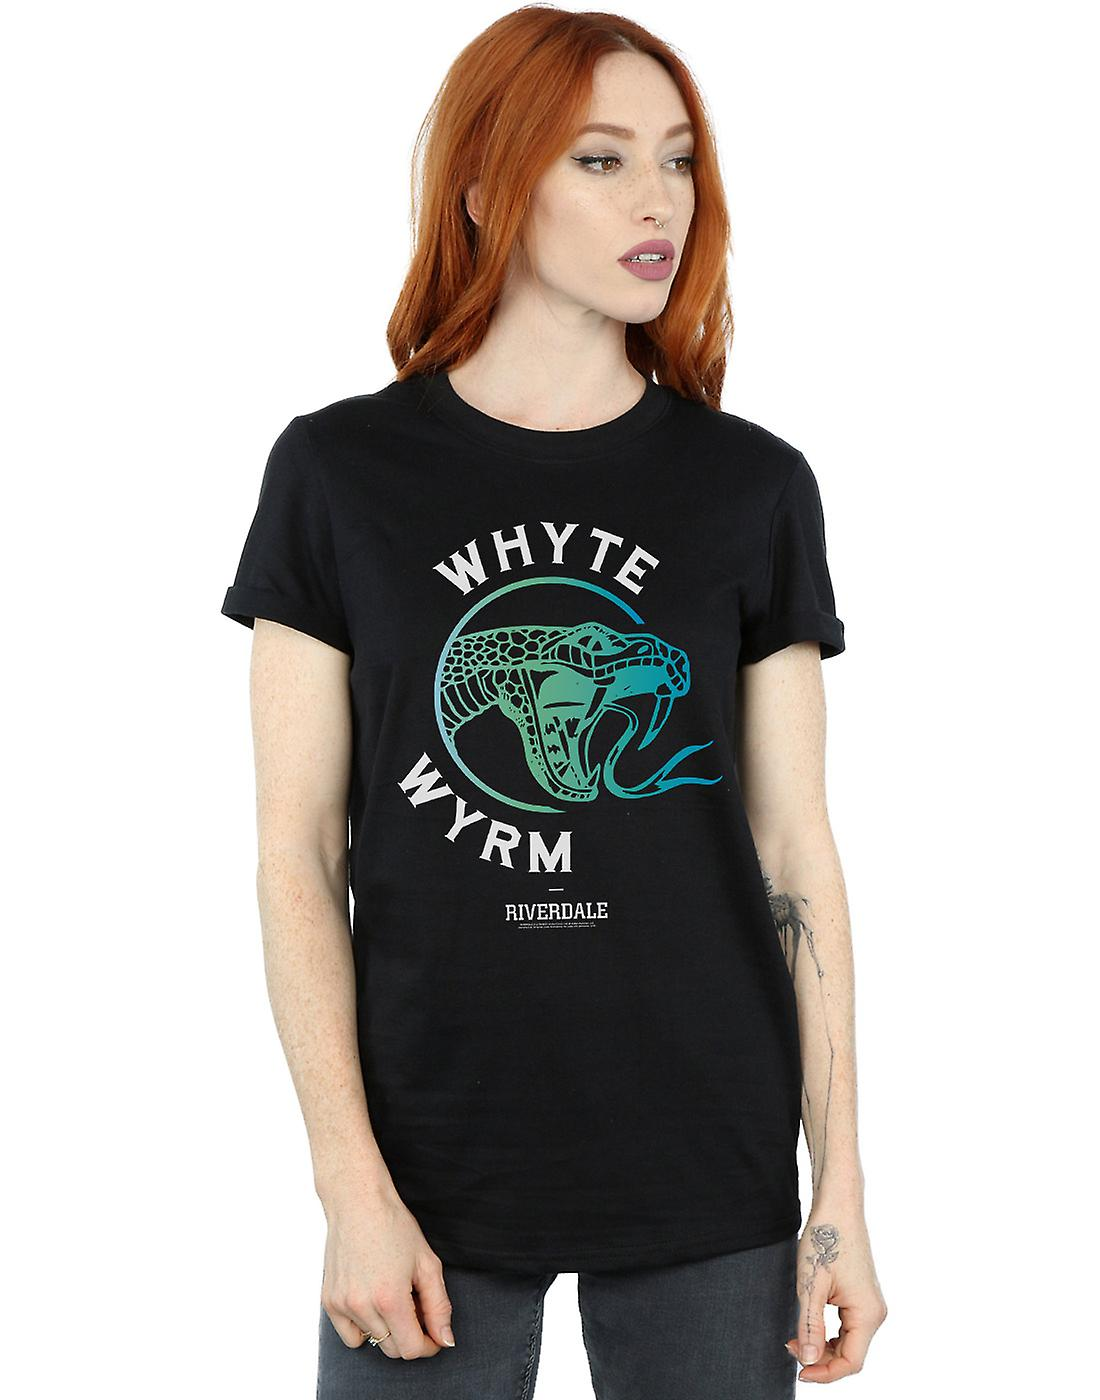 Riverdale Women's Whyte Wyrm Boyfriend Fit T-Shirt